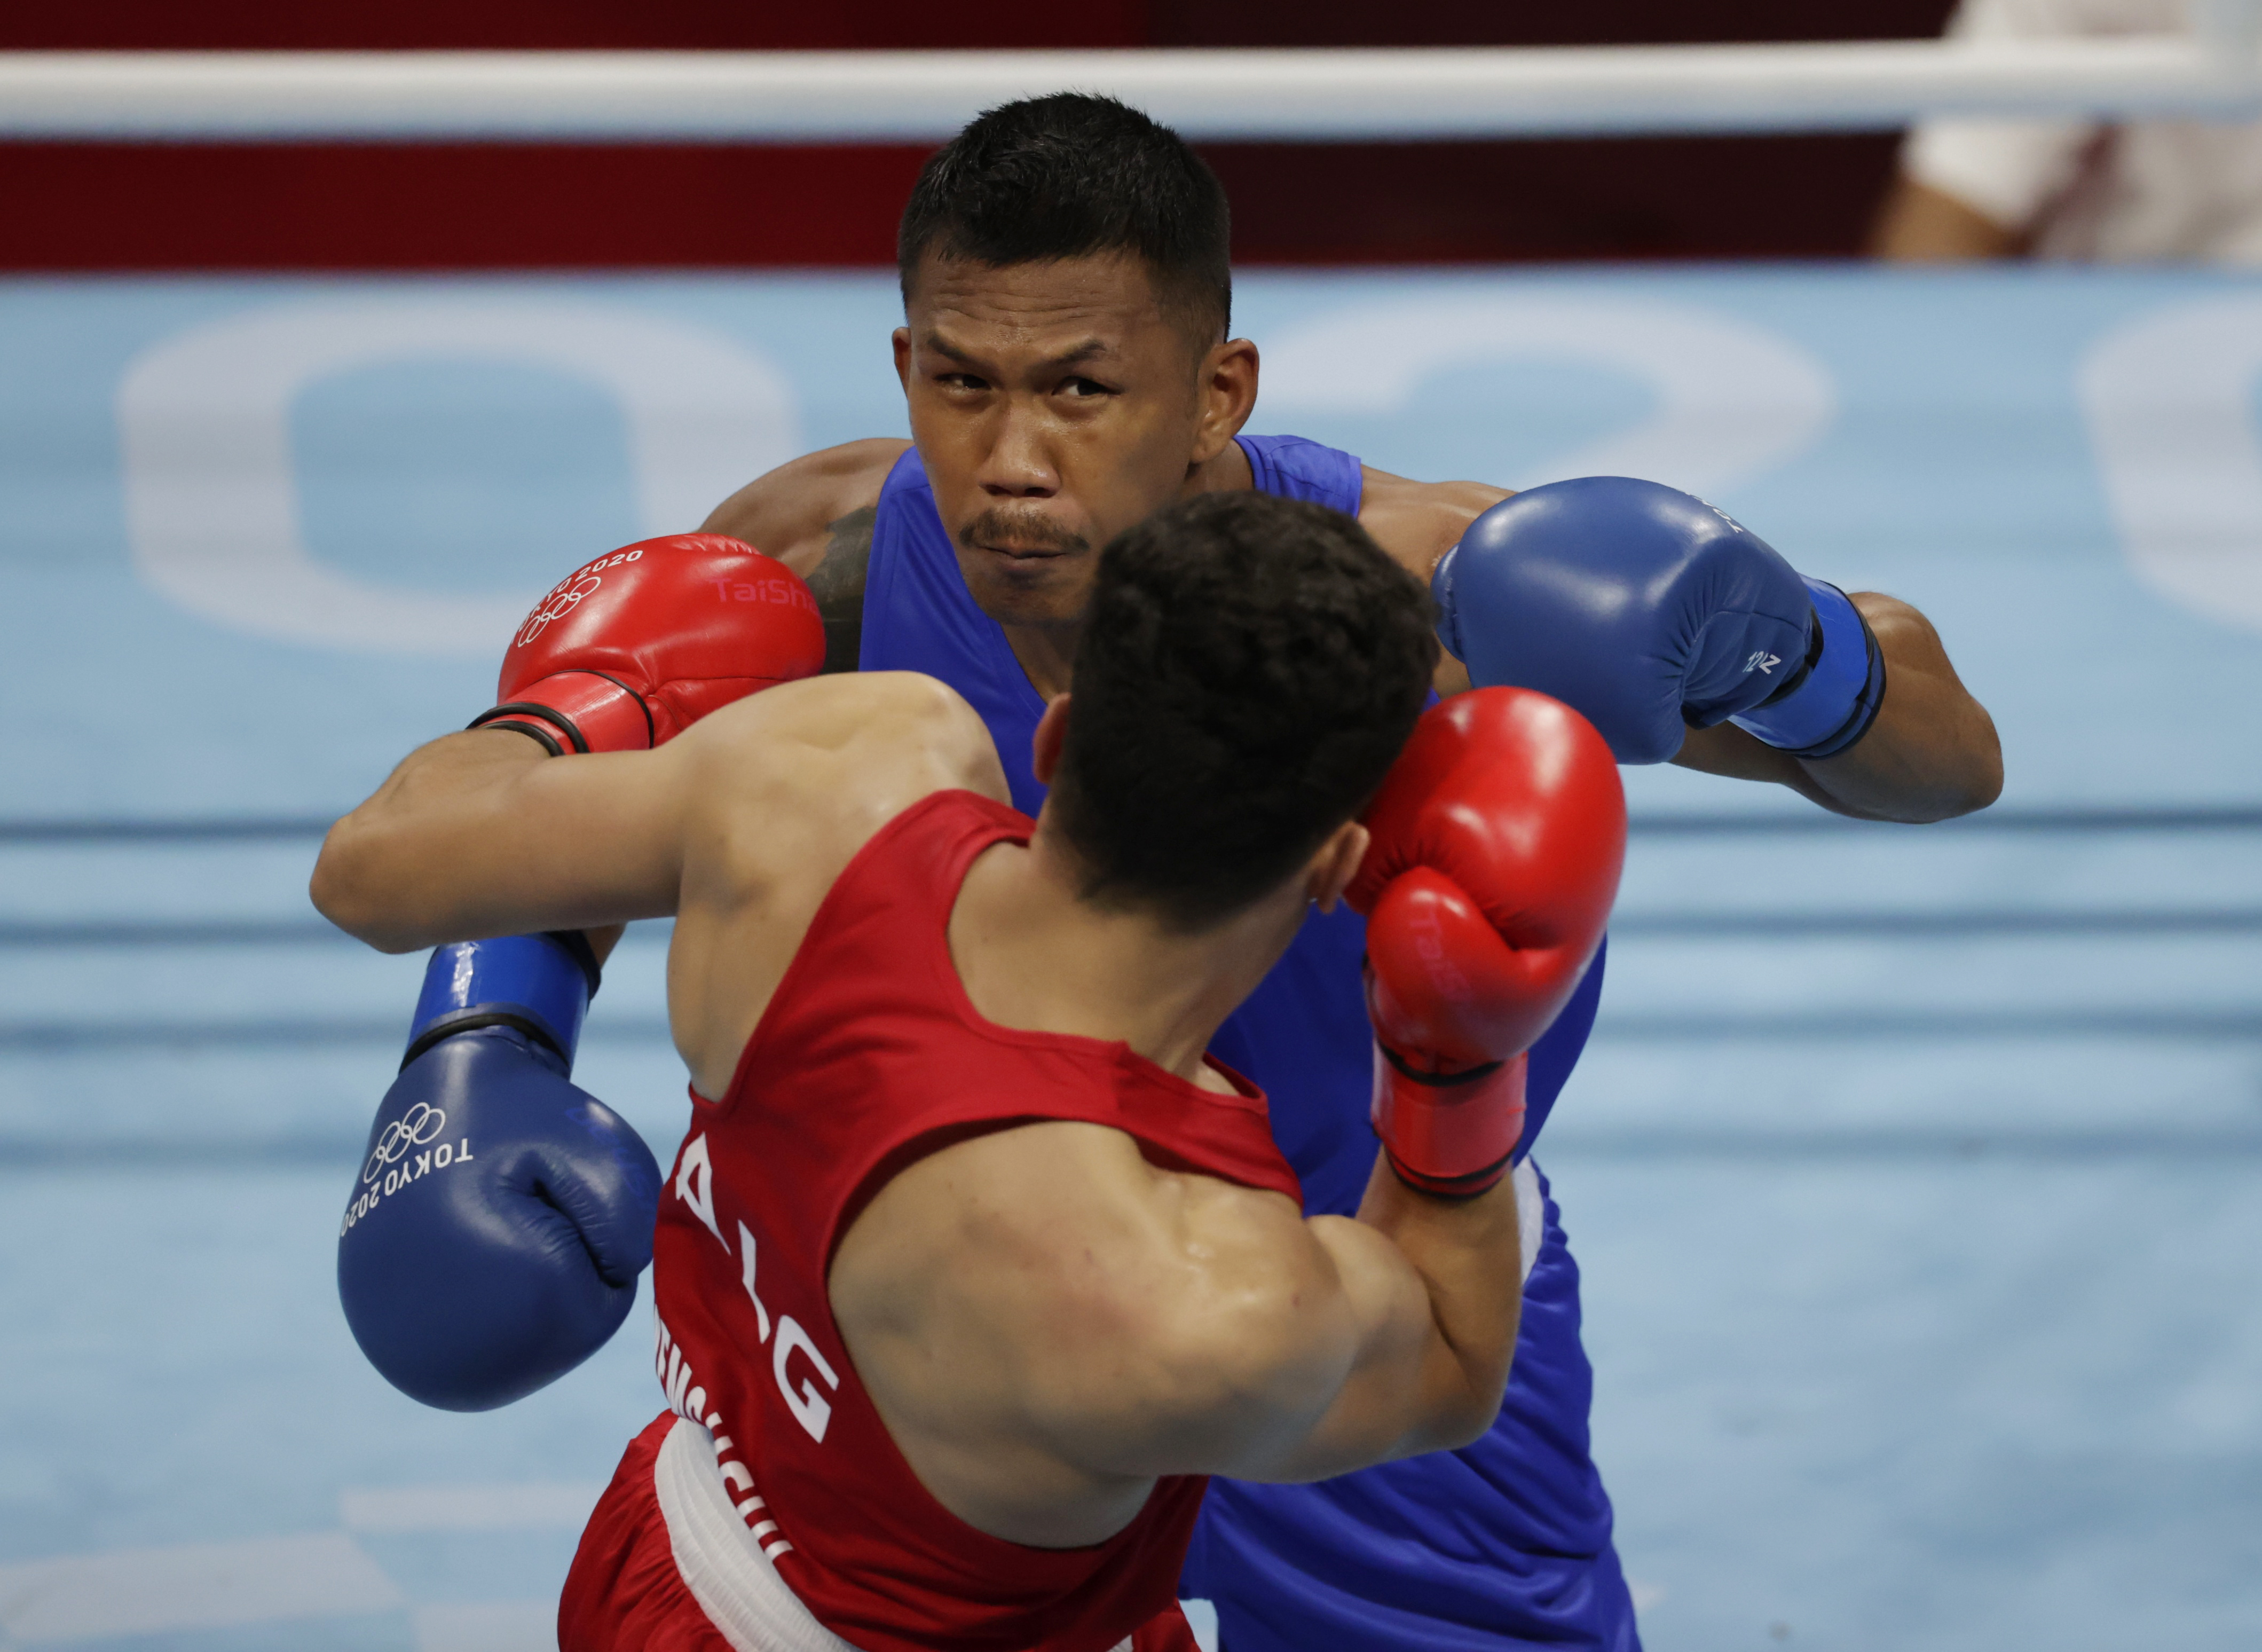 Tokyo 2020 Olympics - Boxing - Men's Middleweight - Last 16  - Kokugikan Arena - Tokyo, Japan - July 29, 2021. Younes Nemouchi of Algeria and Eumir Marcial of the Philippines in action. REUTERS/Ueslei Marcelino